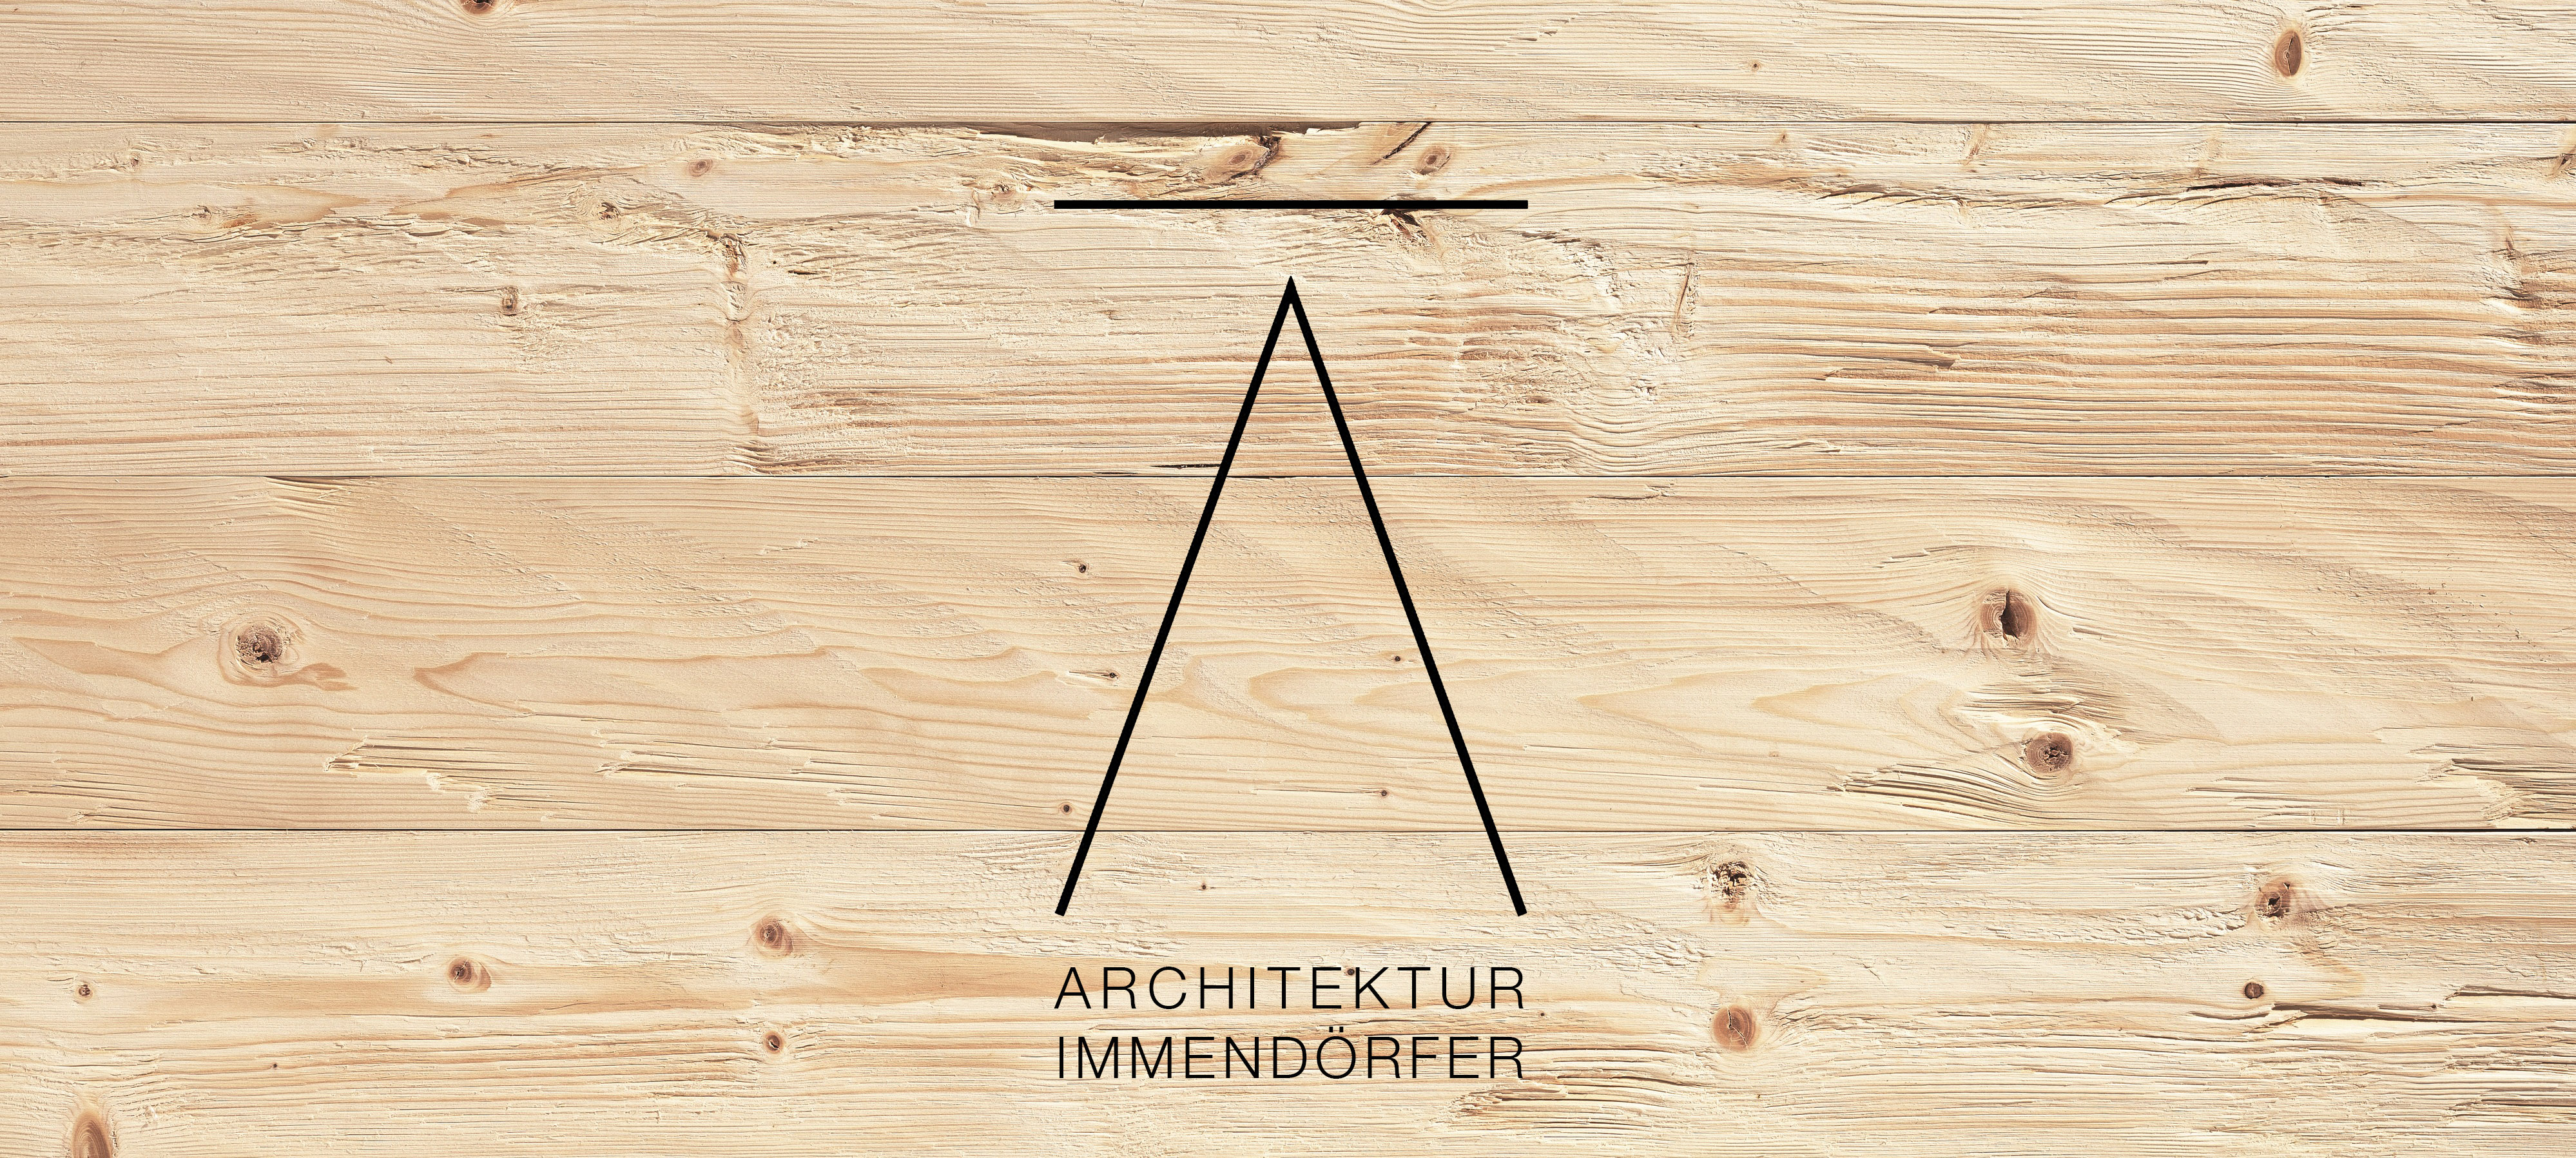 ARCHITEKTUR IMMENDÖRFER